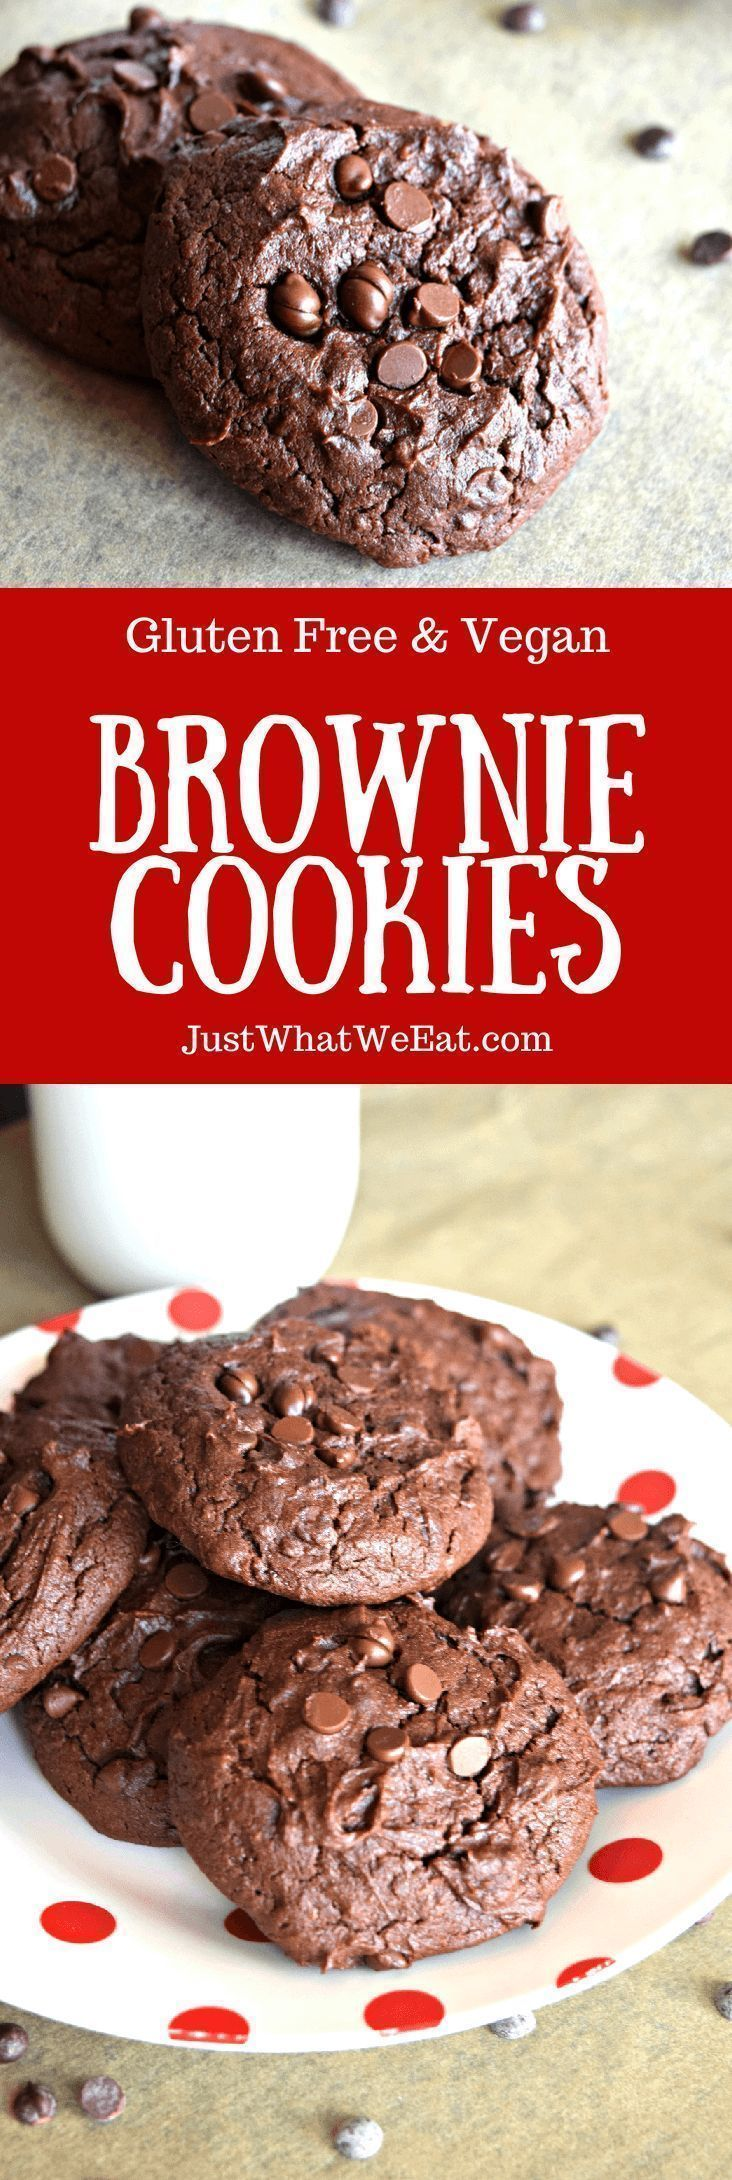 Brownie Cookies ~ These Gluten Free & Vegan Brownie Cookies are SO rich and choc…